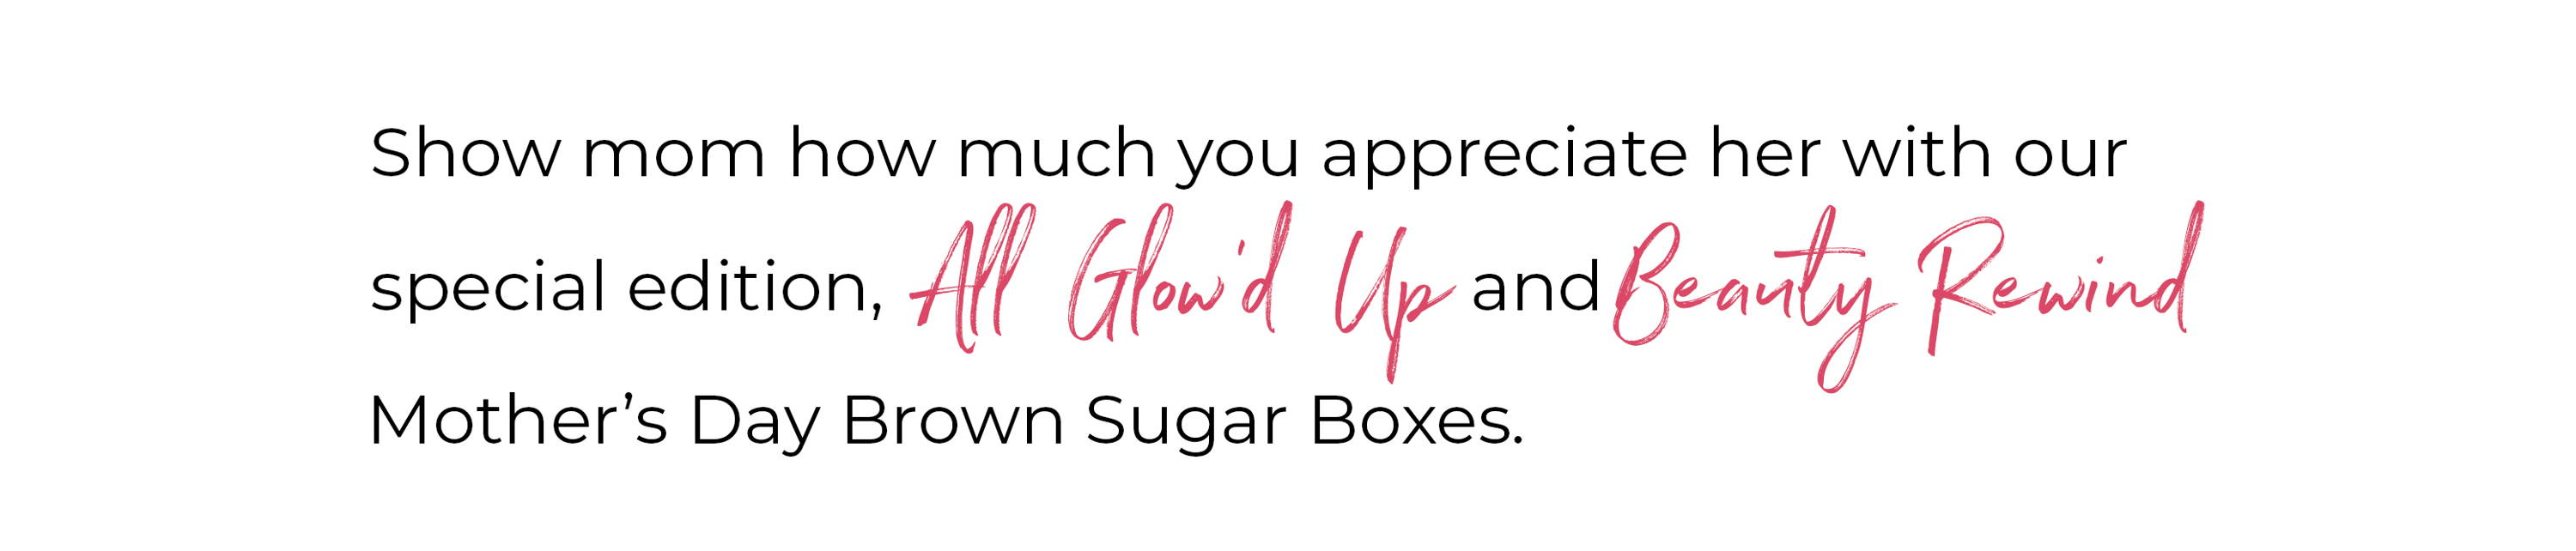 Show mom How much you appreciate her this with the Special Edition Mother's Day Brown Sugar Box